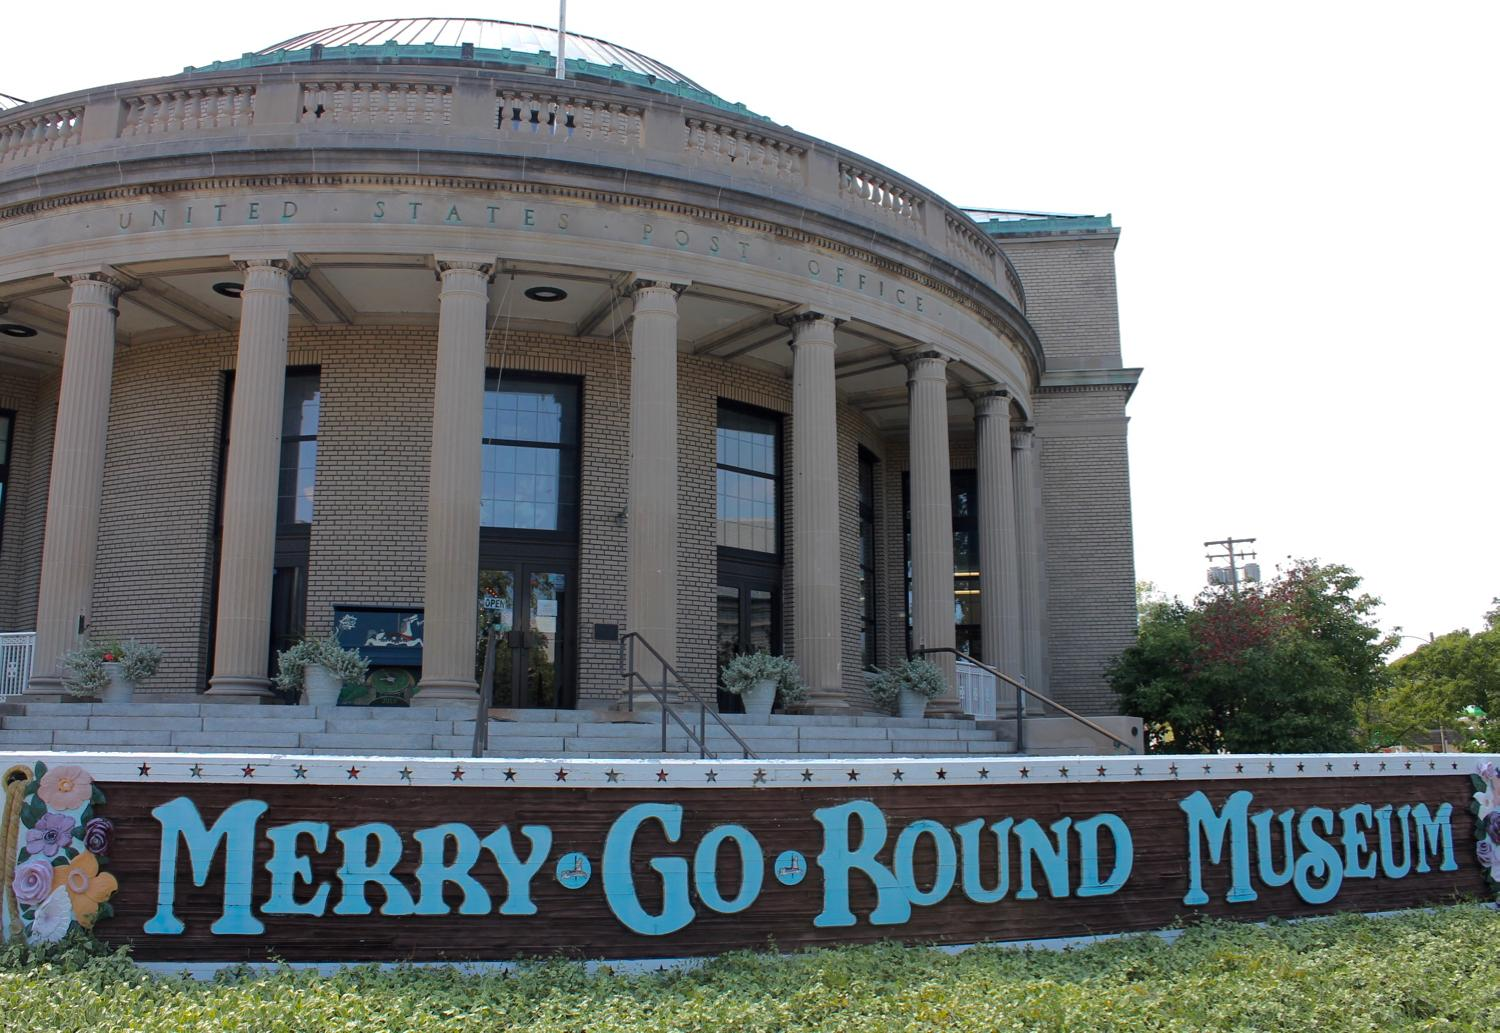 The Merry-Go-Round Museum is dedicated to preserving the history of carousels. The museum includes several carousel animals, a working woodcarving shop, and the museum's own fully-restored Allan Herschell carousel. It is located about 230 miles north of Cincinnati. ADDRESS: 301 Jackson St., Sandusky, OH (44870) / Image: Rose Brewington // Published: 9.5.17